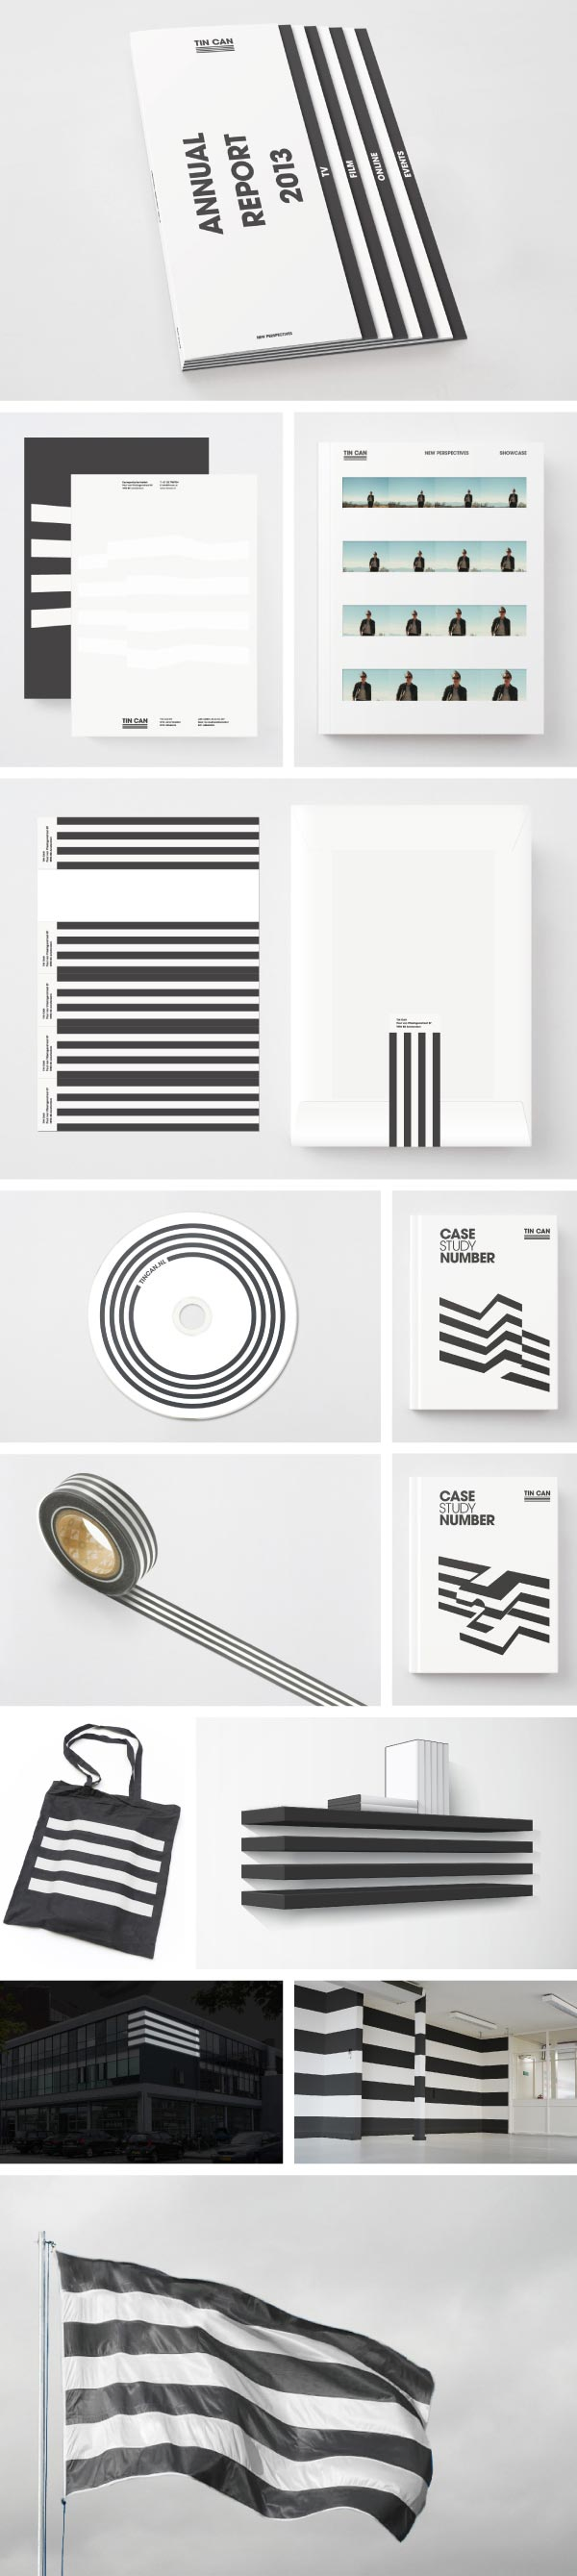 TIN CAN Identity - graphic design by Leon Dijkstra